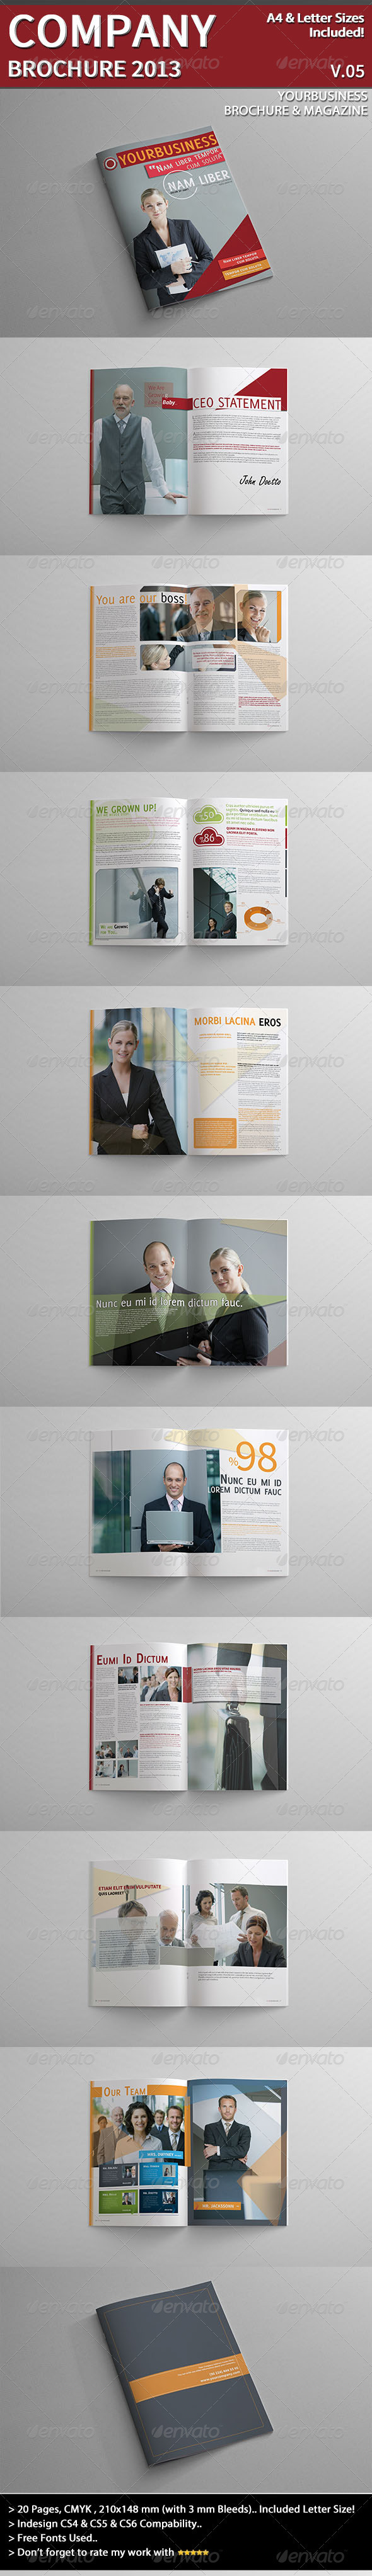 GraphicRiver Company Brochure 2013 Part 05 3972884